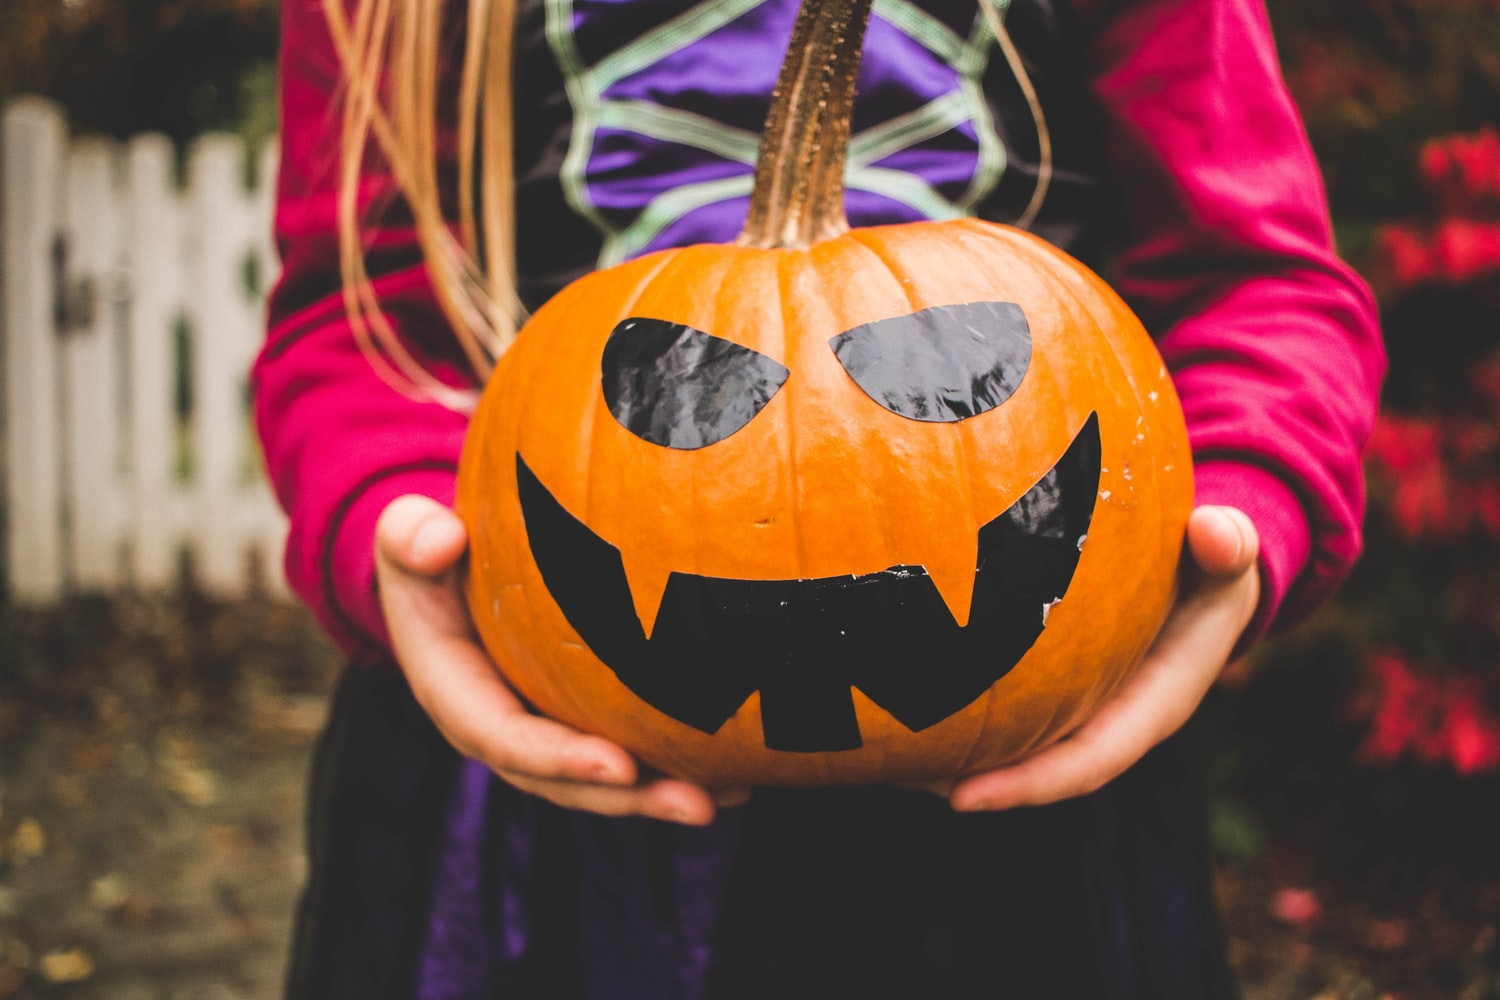 Halloween or Hallowe'en also is known as Allhalloween, All Hallows' Eve, or All Saints' Eve, is a celebration observed in several countries on 31 October, the eve of the Western Christian feast of All Hallows' Day.